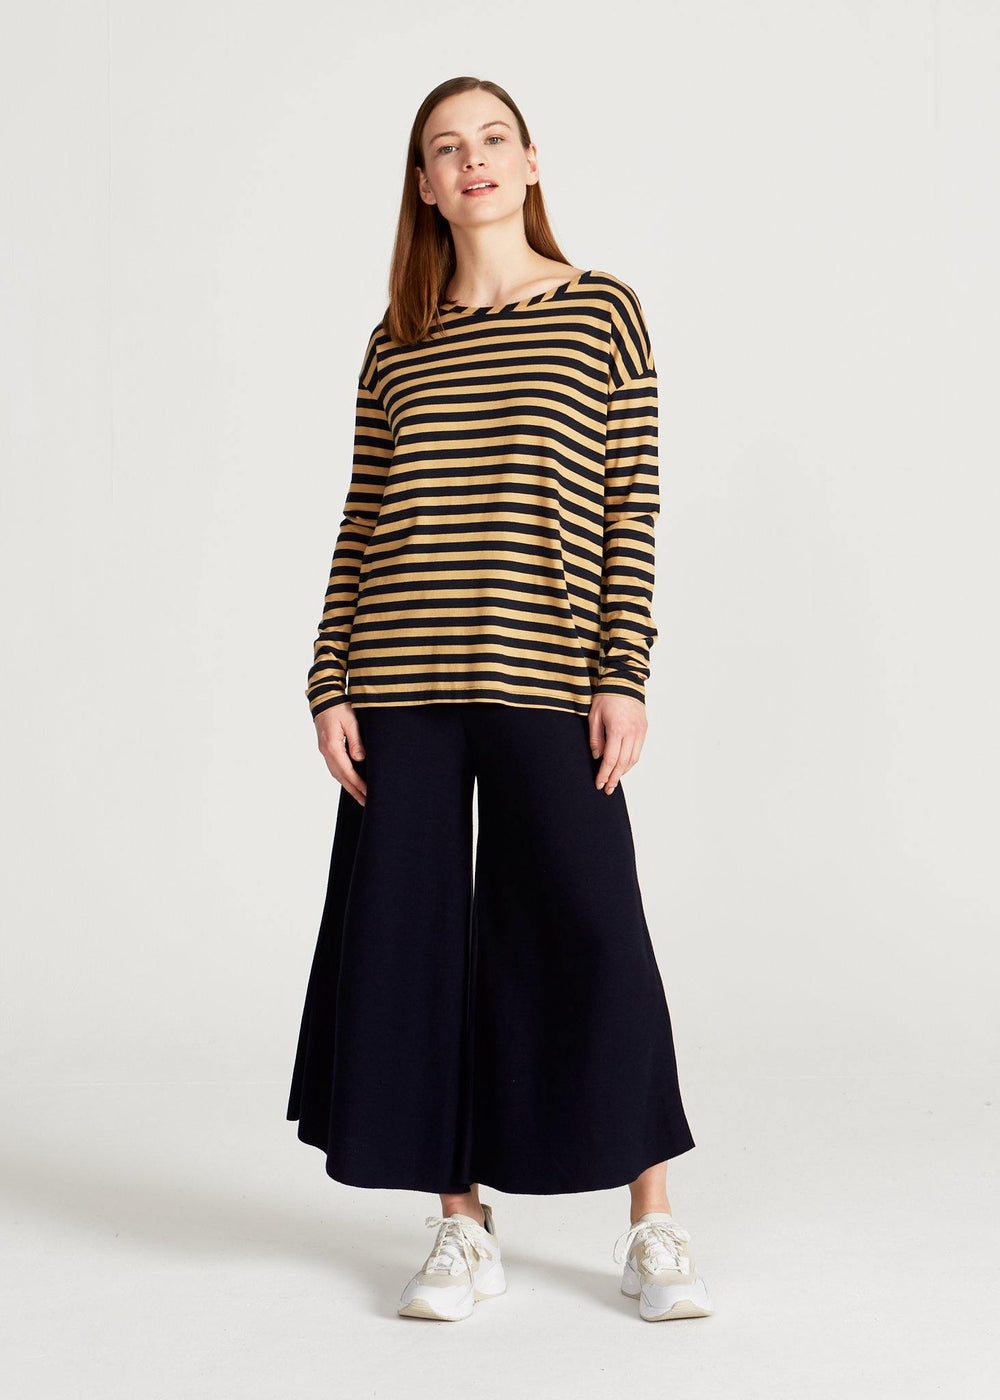 Givn BERLIN Polly Longsleeve Blue / Camel (Stripes)